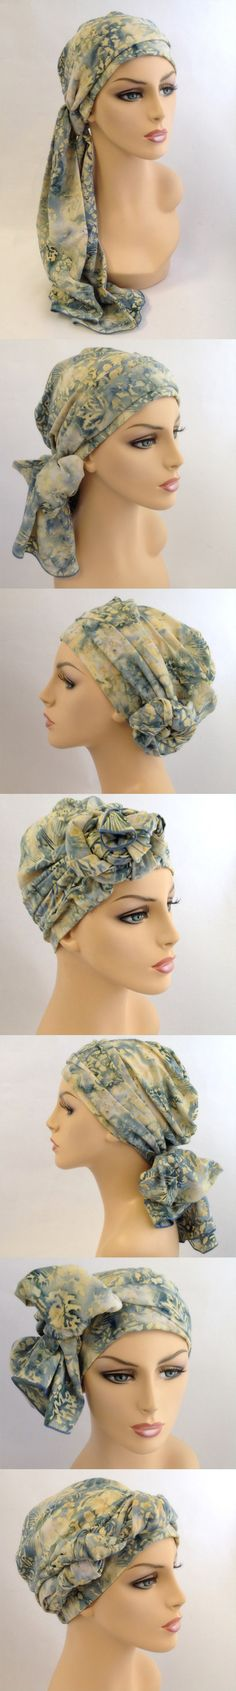 Turban & Scarf set easily ties in dozens of styles. Viisit and see our turban tutorials, how to tie a turban. Feel beautiful during Tie A Turban, Turban Style, Chemo Hair Loss, Turban Tutorial, Der Gentleman, Hair Cover, Denim And Lace, Scarf Hat, How To Wear Scarves